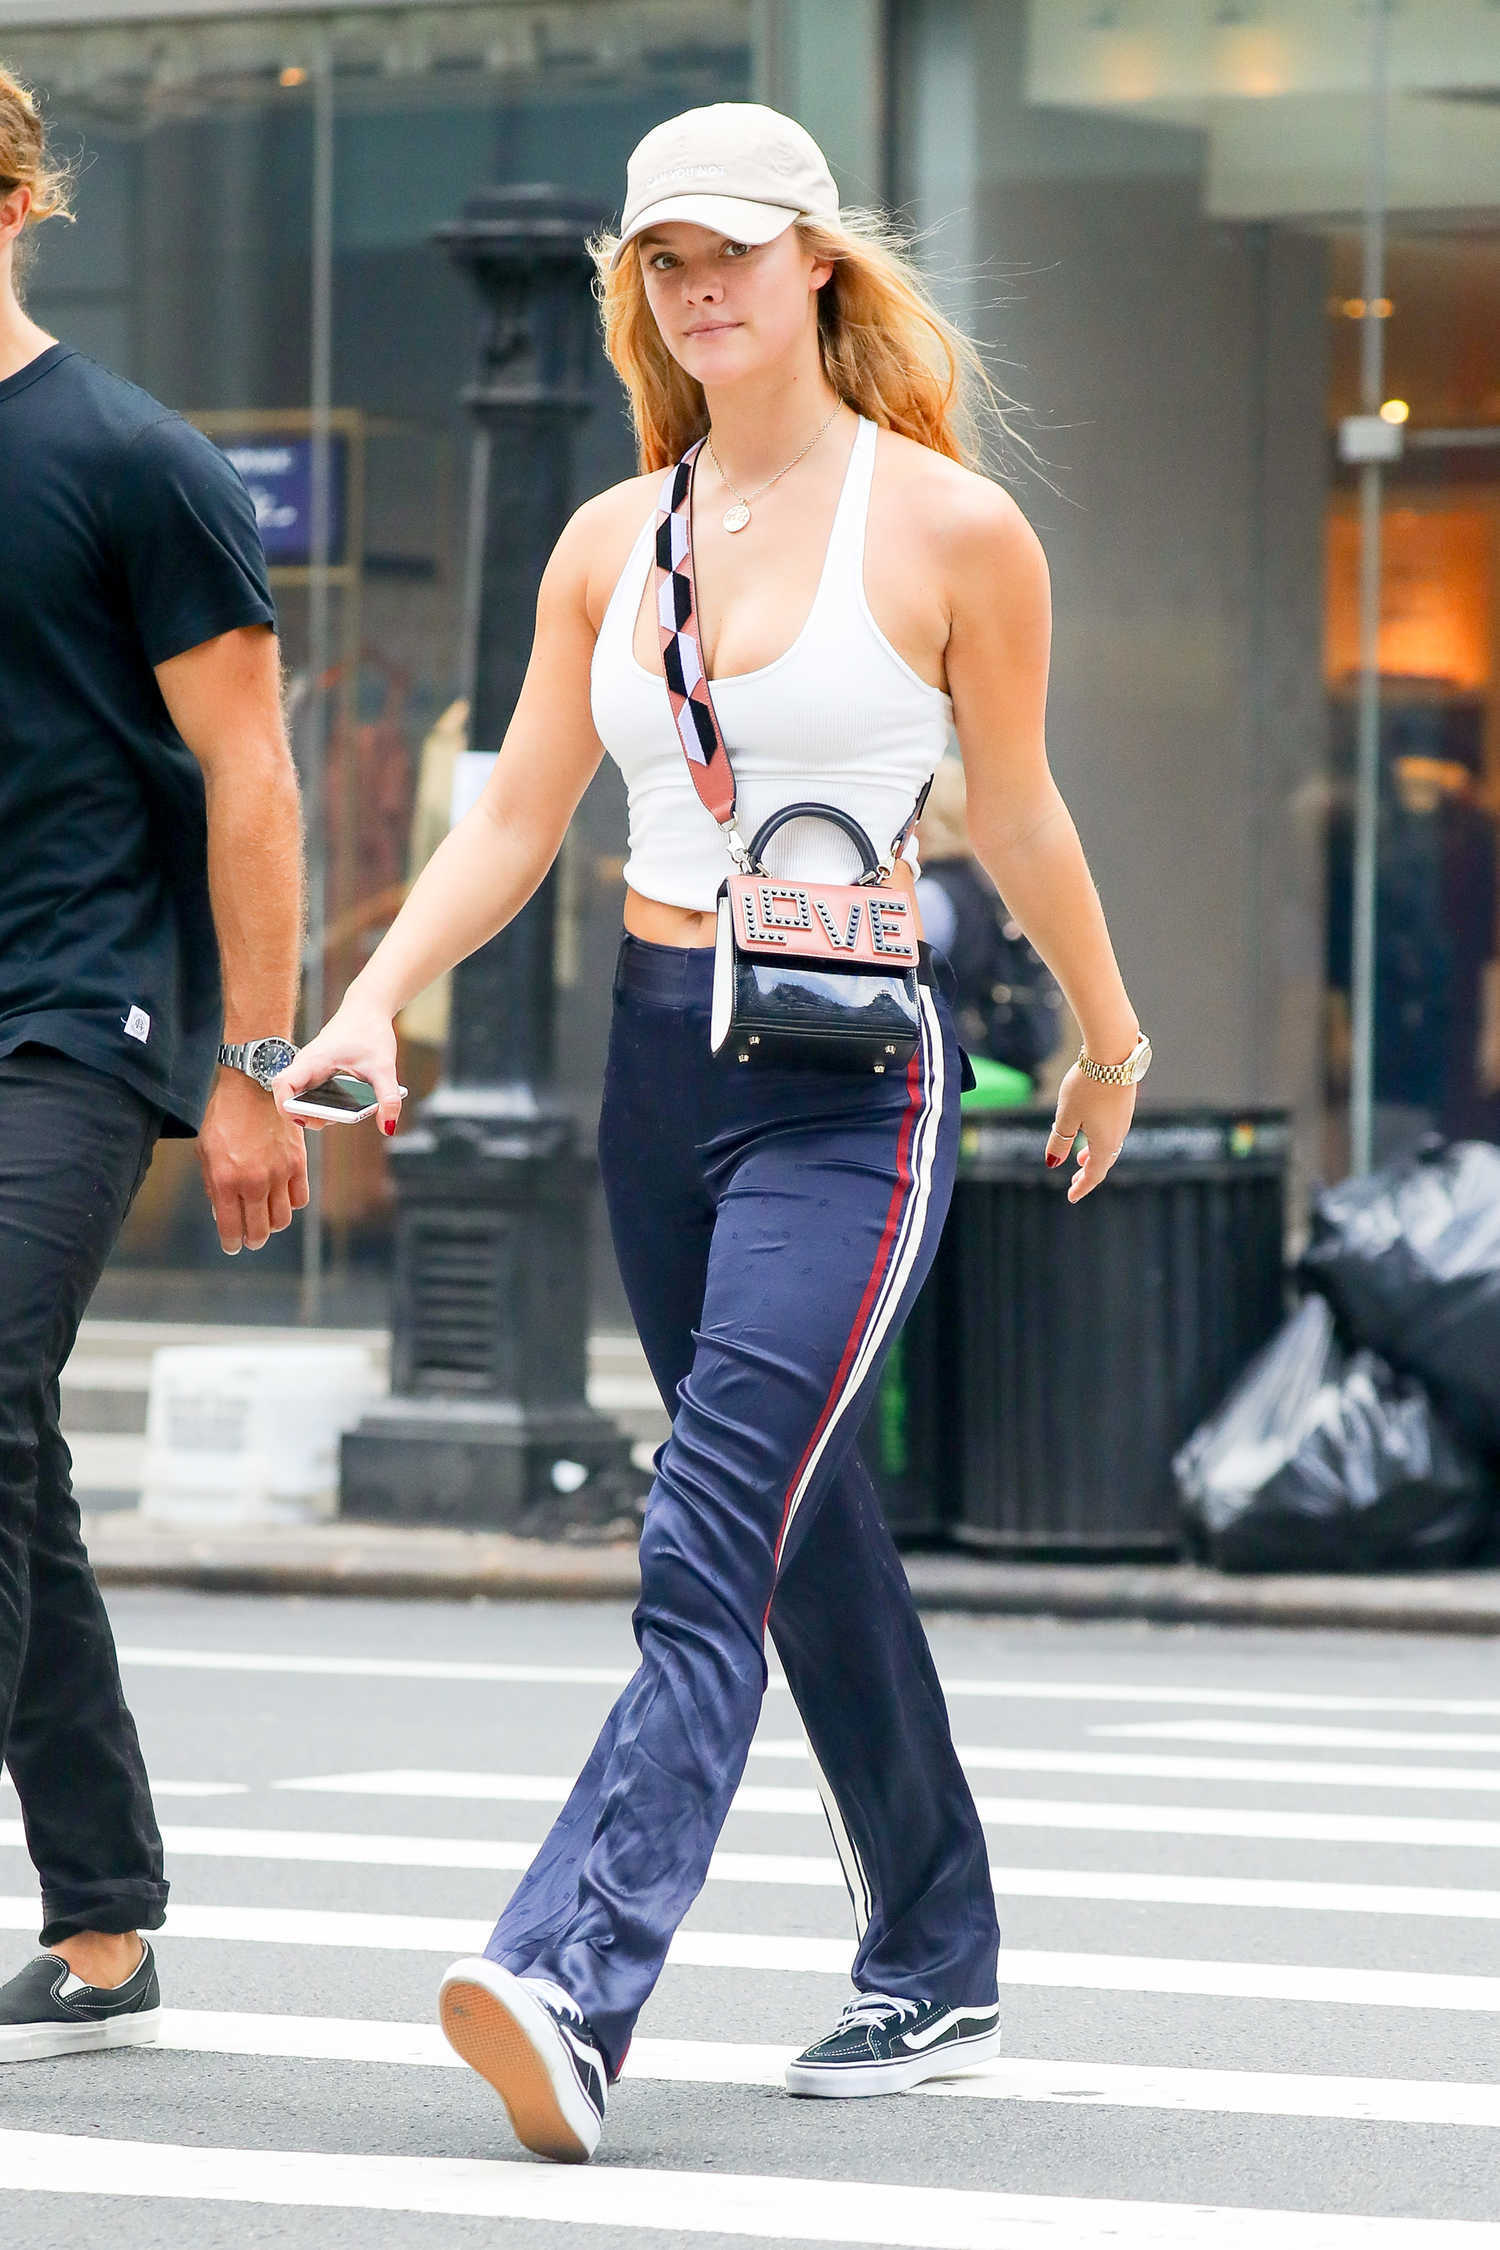 Nina Agdal Walkes With Her Boyfriend in New York City ...